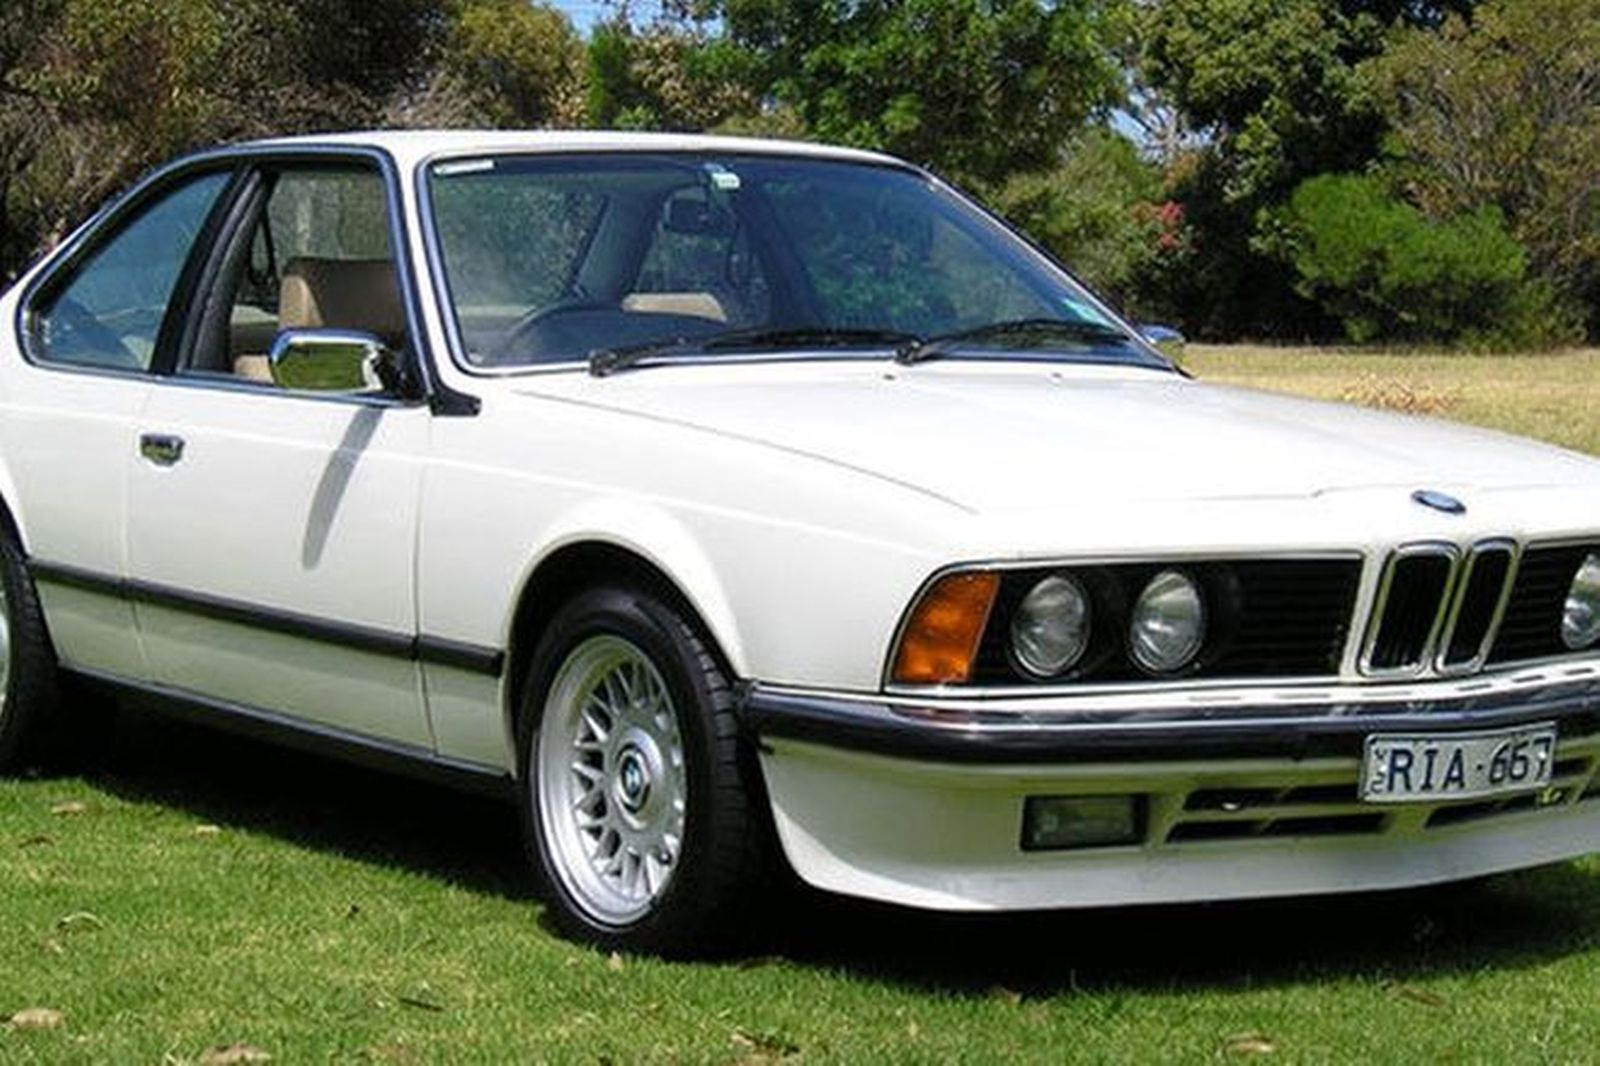 1983 bmw 635csi coupe sold bmw 635 csi coupe auctions lot 26 shannons E24 633CSi at webbmarketing.co